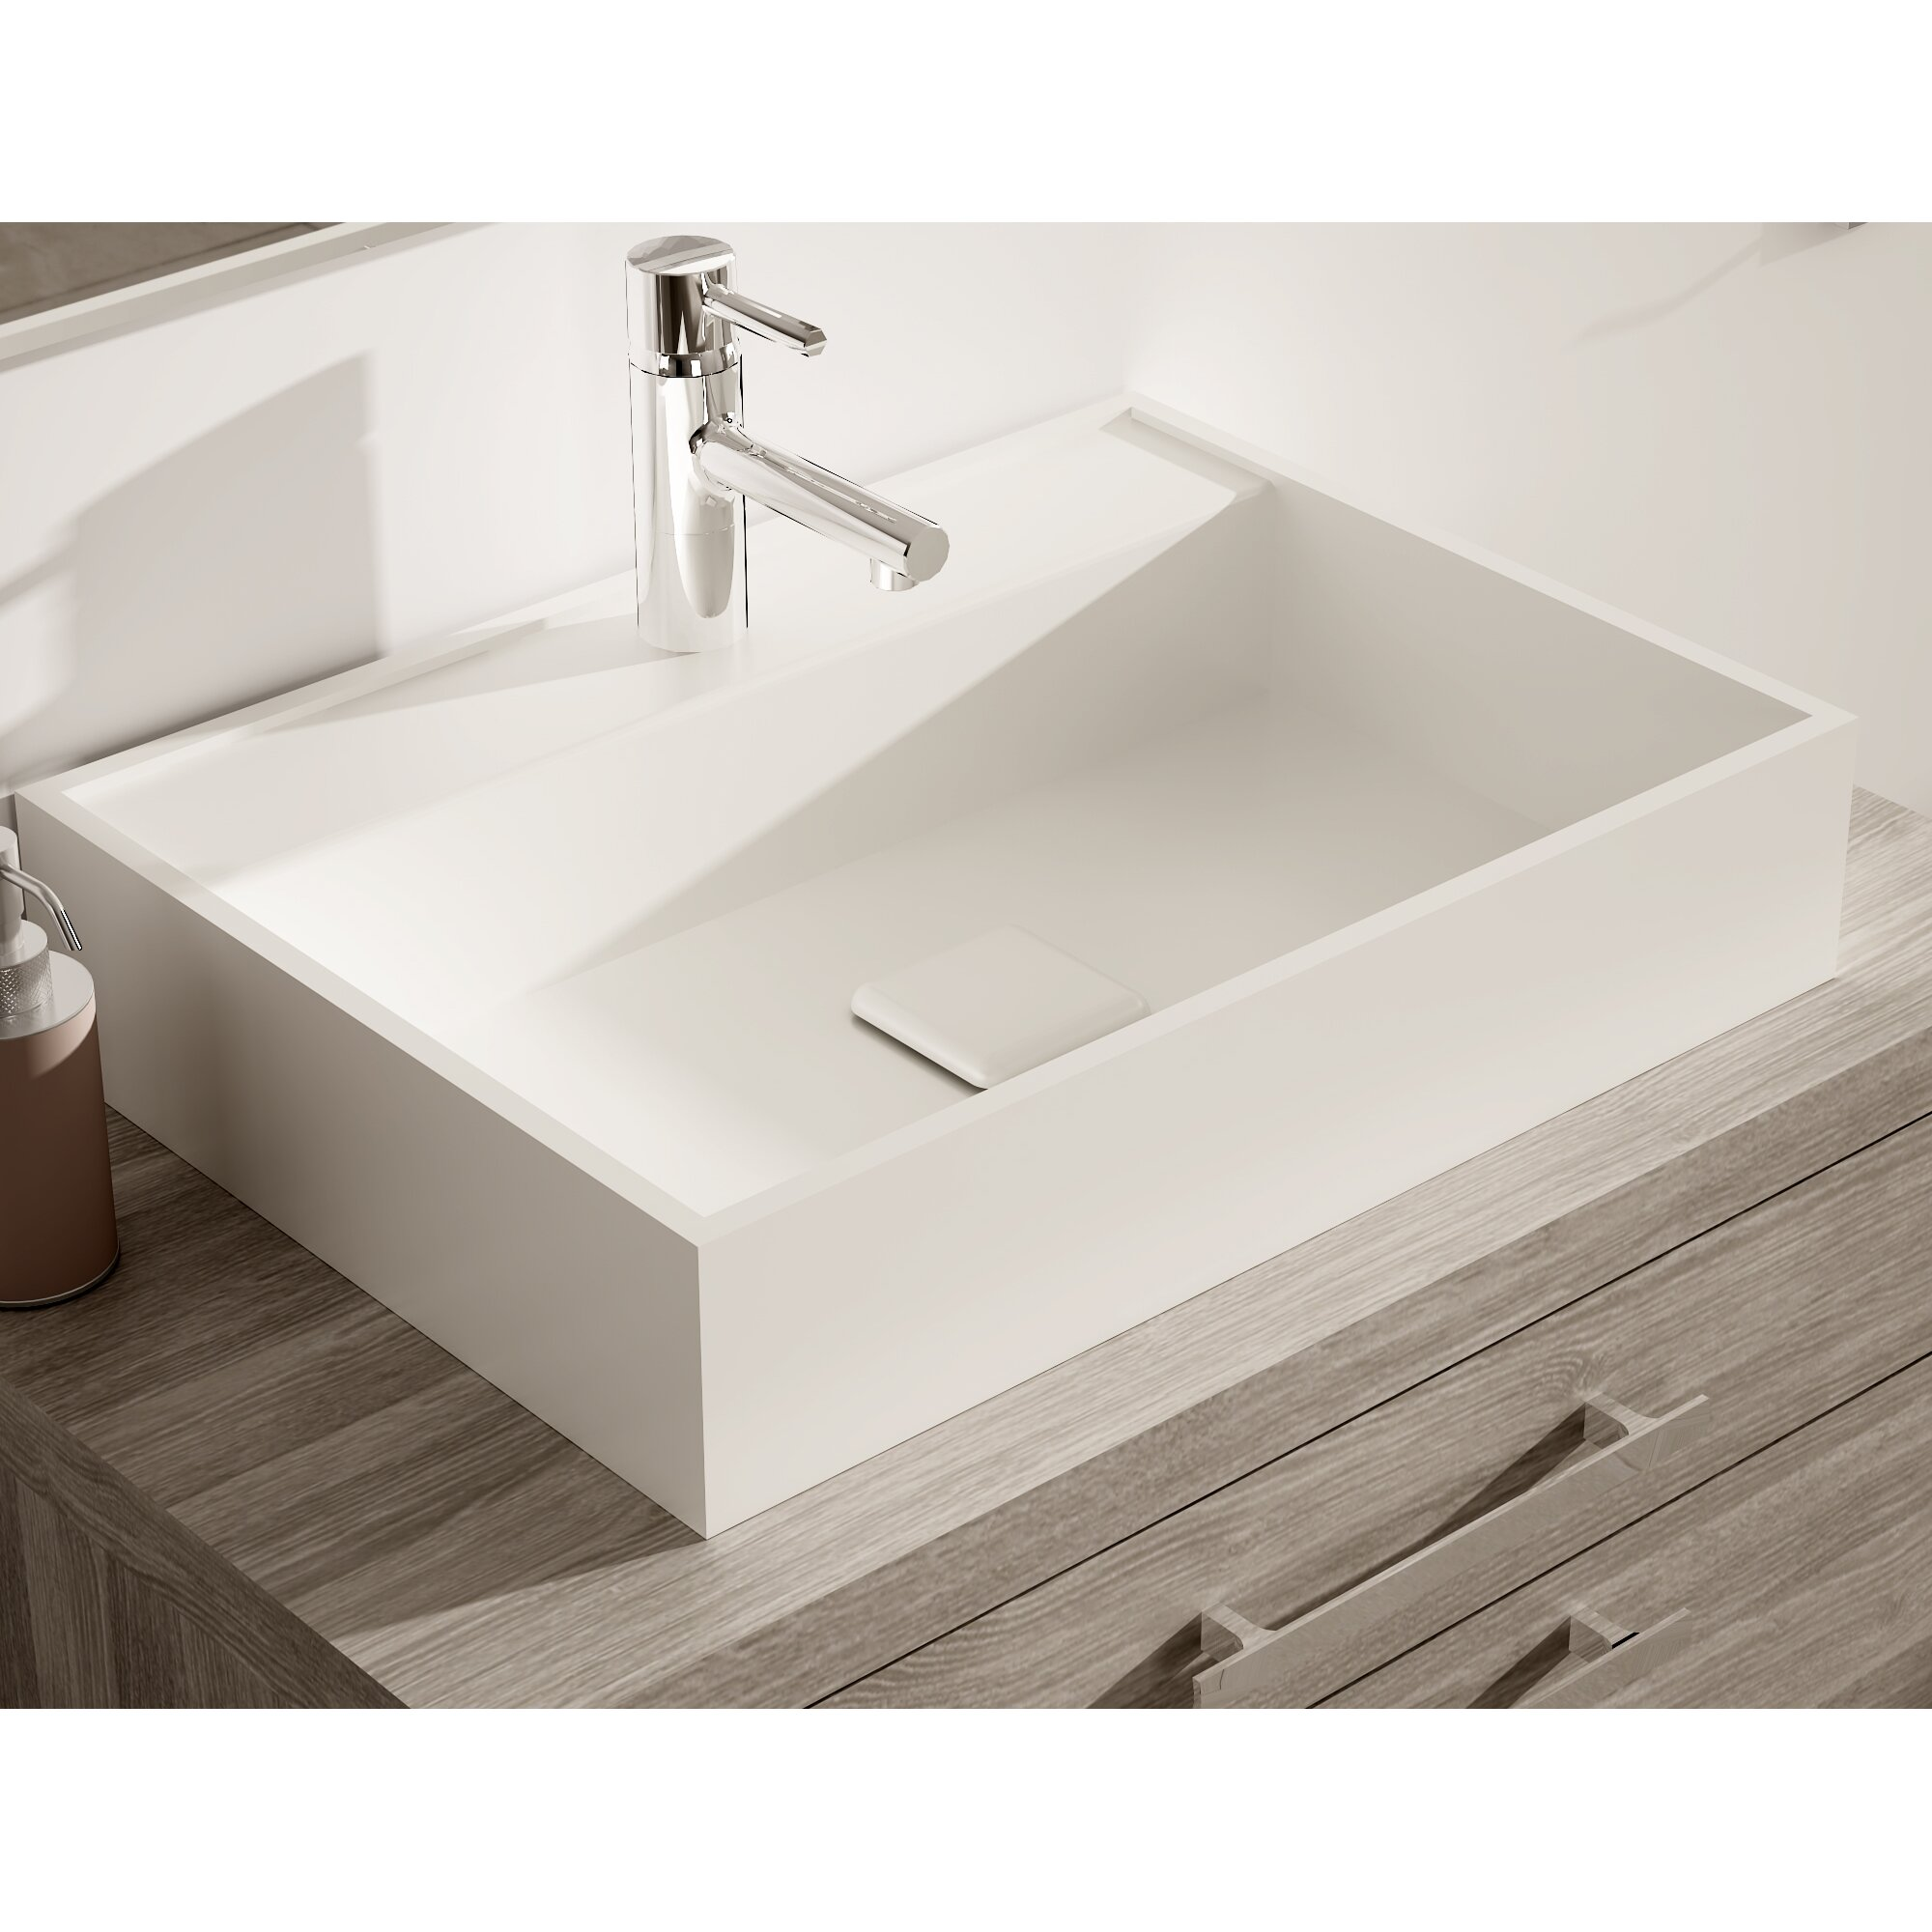 hispania home montreal 24 single solid surface sink bathroom vanity set reviews wayfair